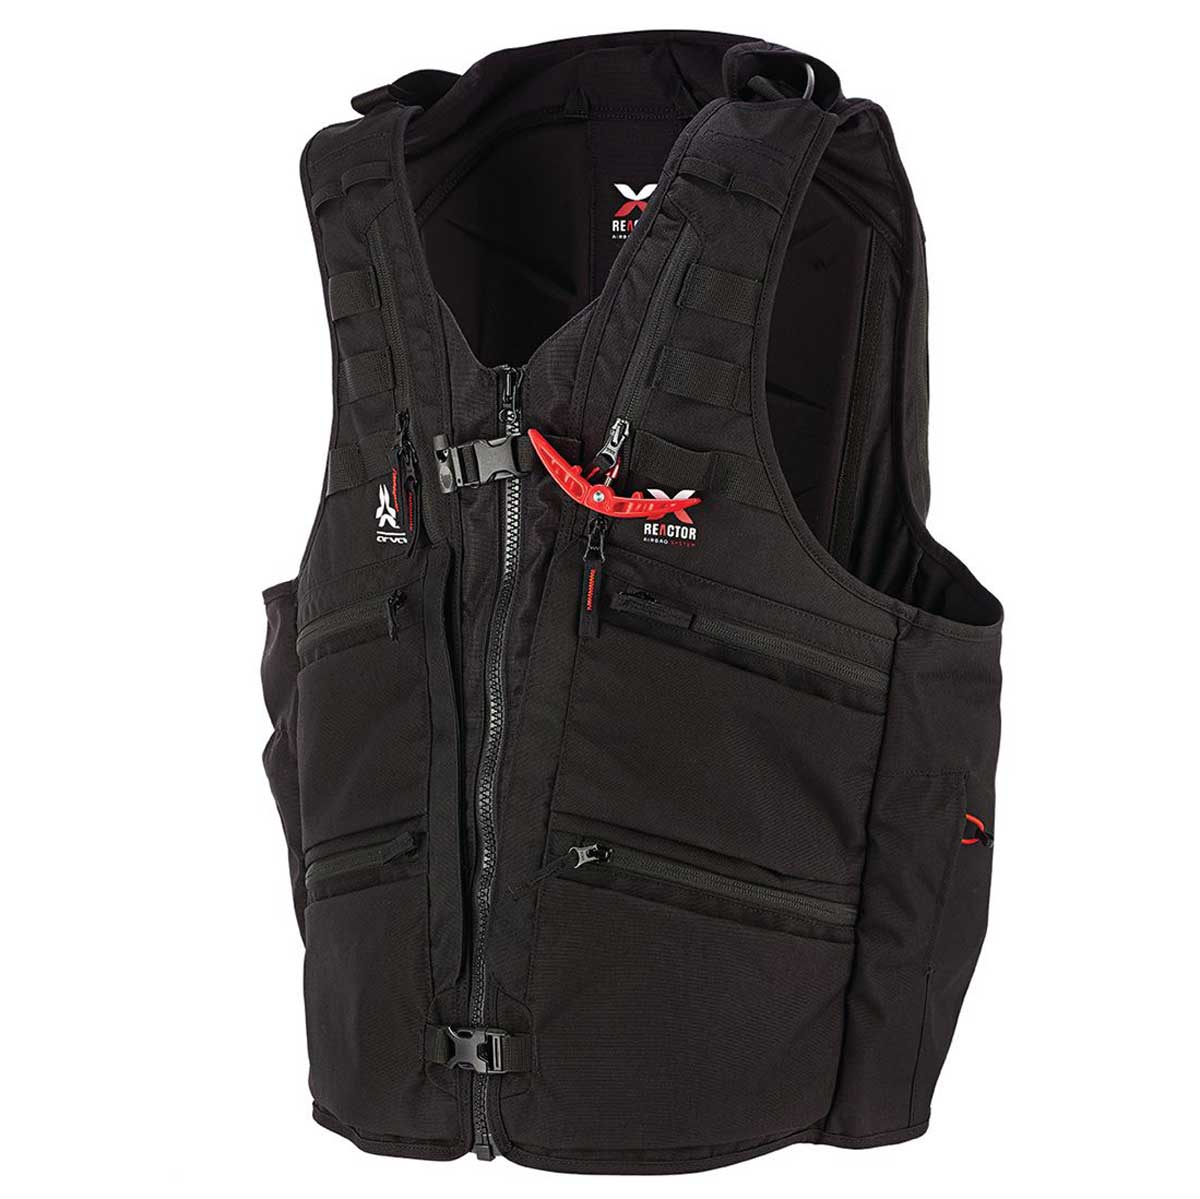 Arva Reactor 15 airbag vest in Blac